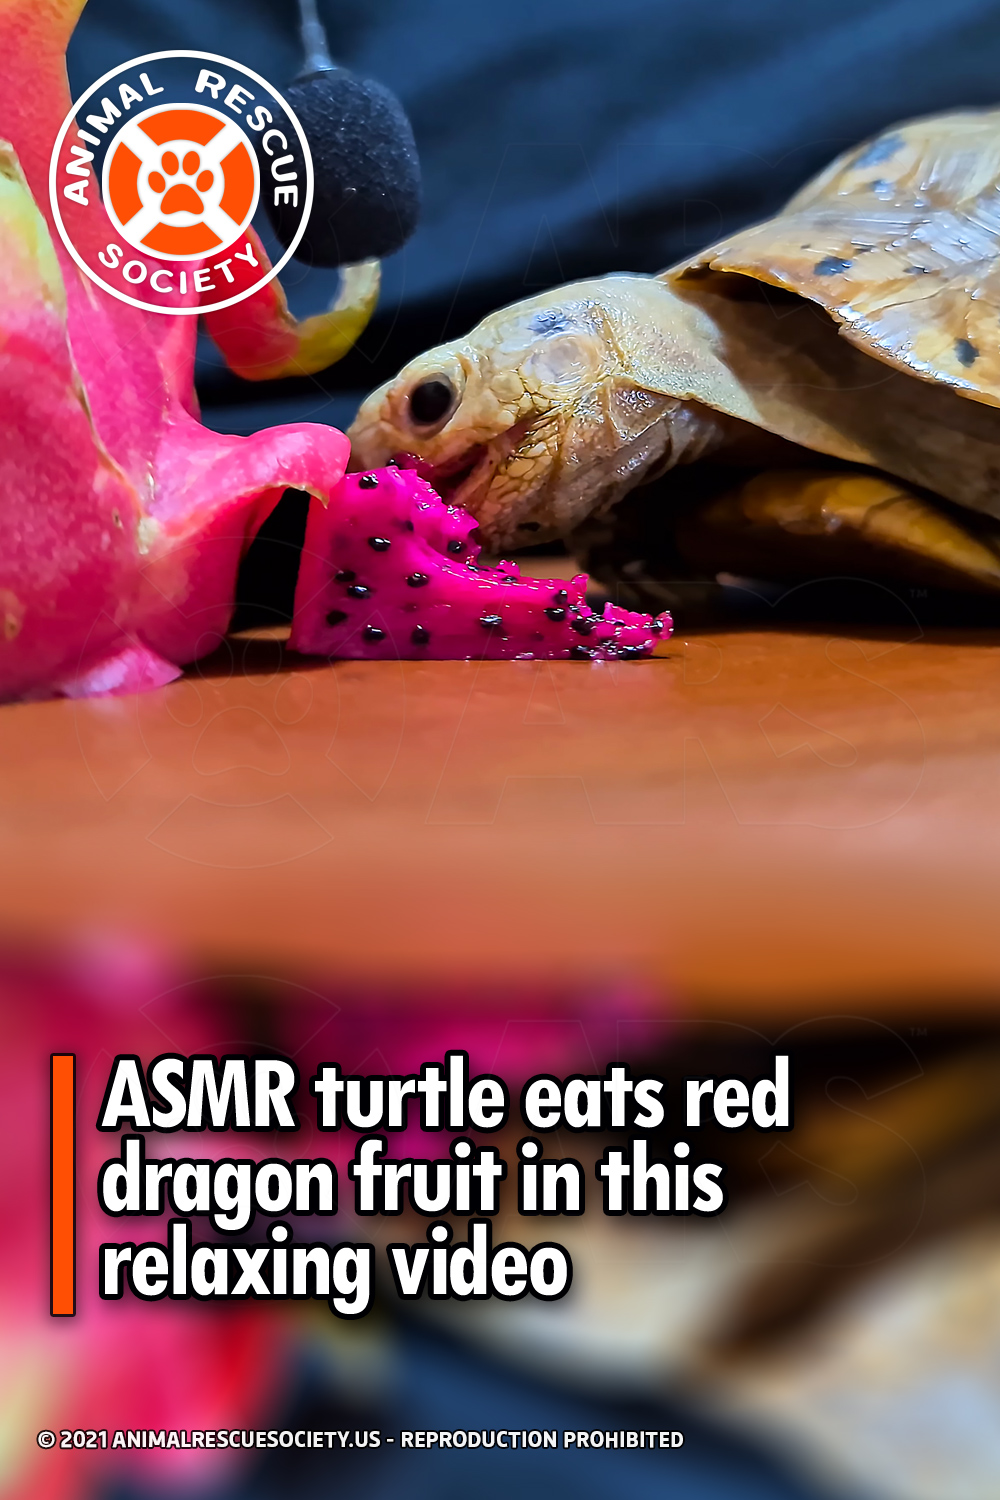 ASMR turtle eats red dragon fruit in this relaxing video